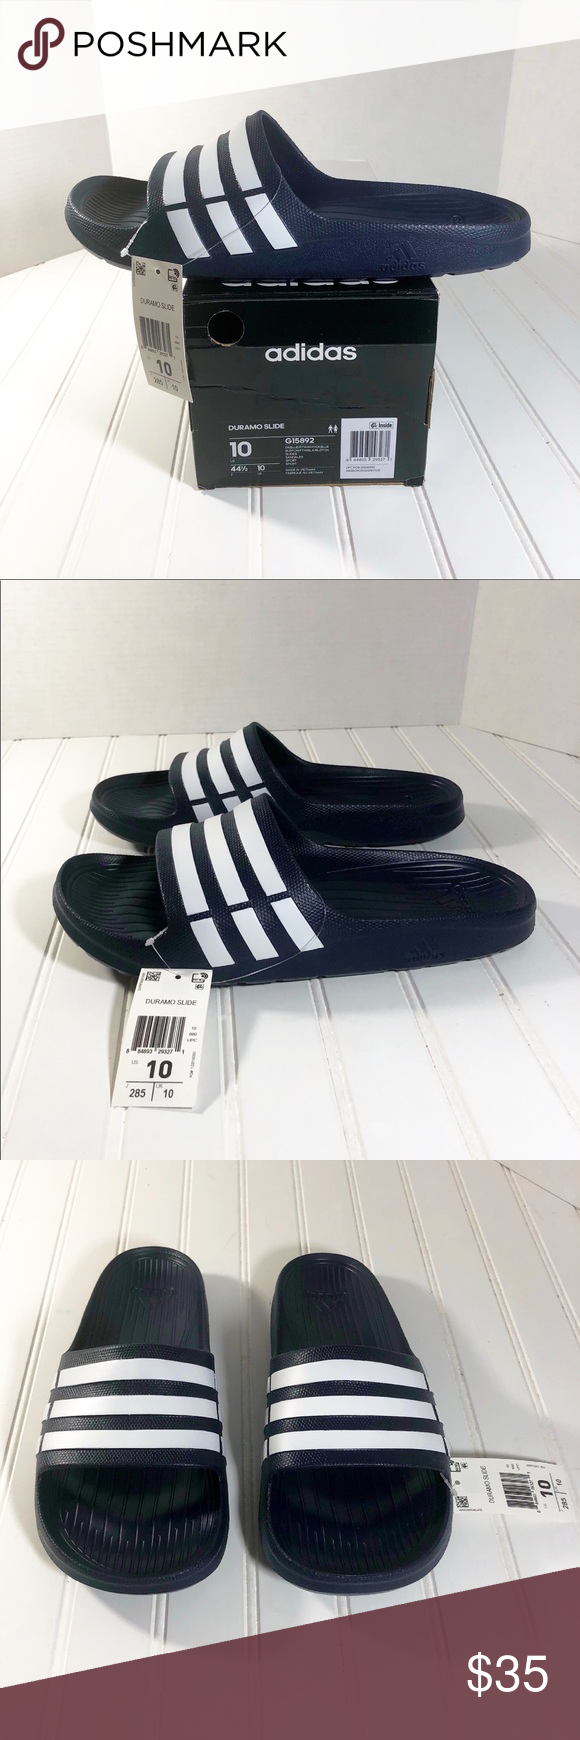 05f7c6286 Men s Adidas Duramo Slide Sandals Size 10 New with box Men s Adidas Duramo  Slide Sandals Style ID  G15892 Brand  Adidas Color  Navy White Size  Men s  10 ...